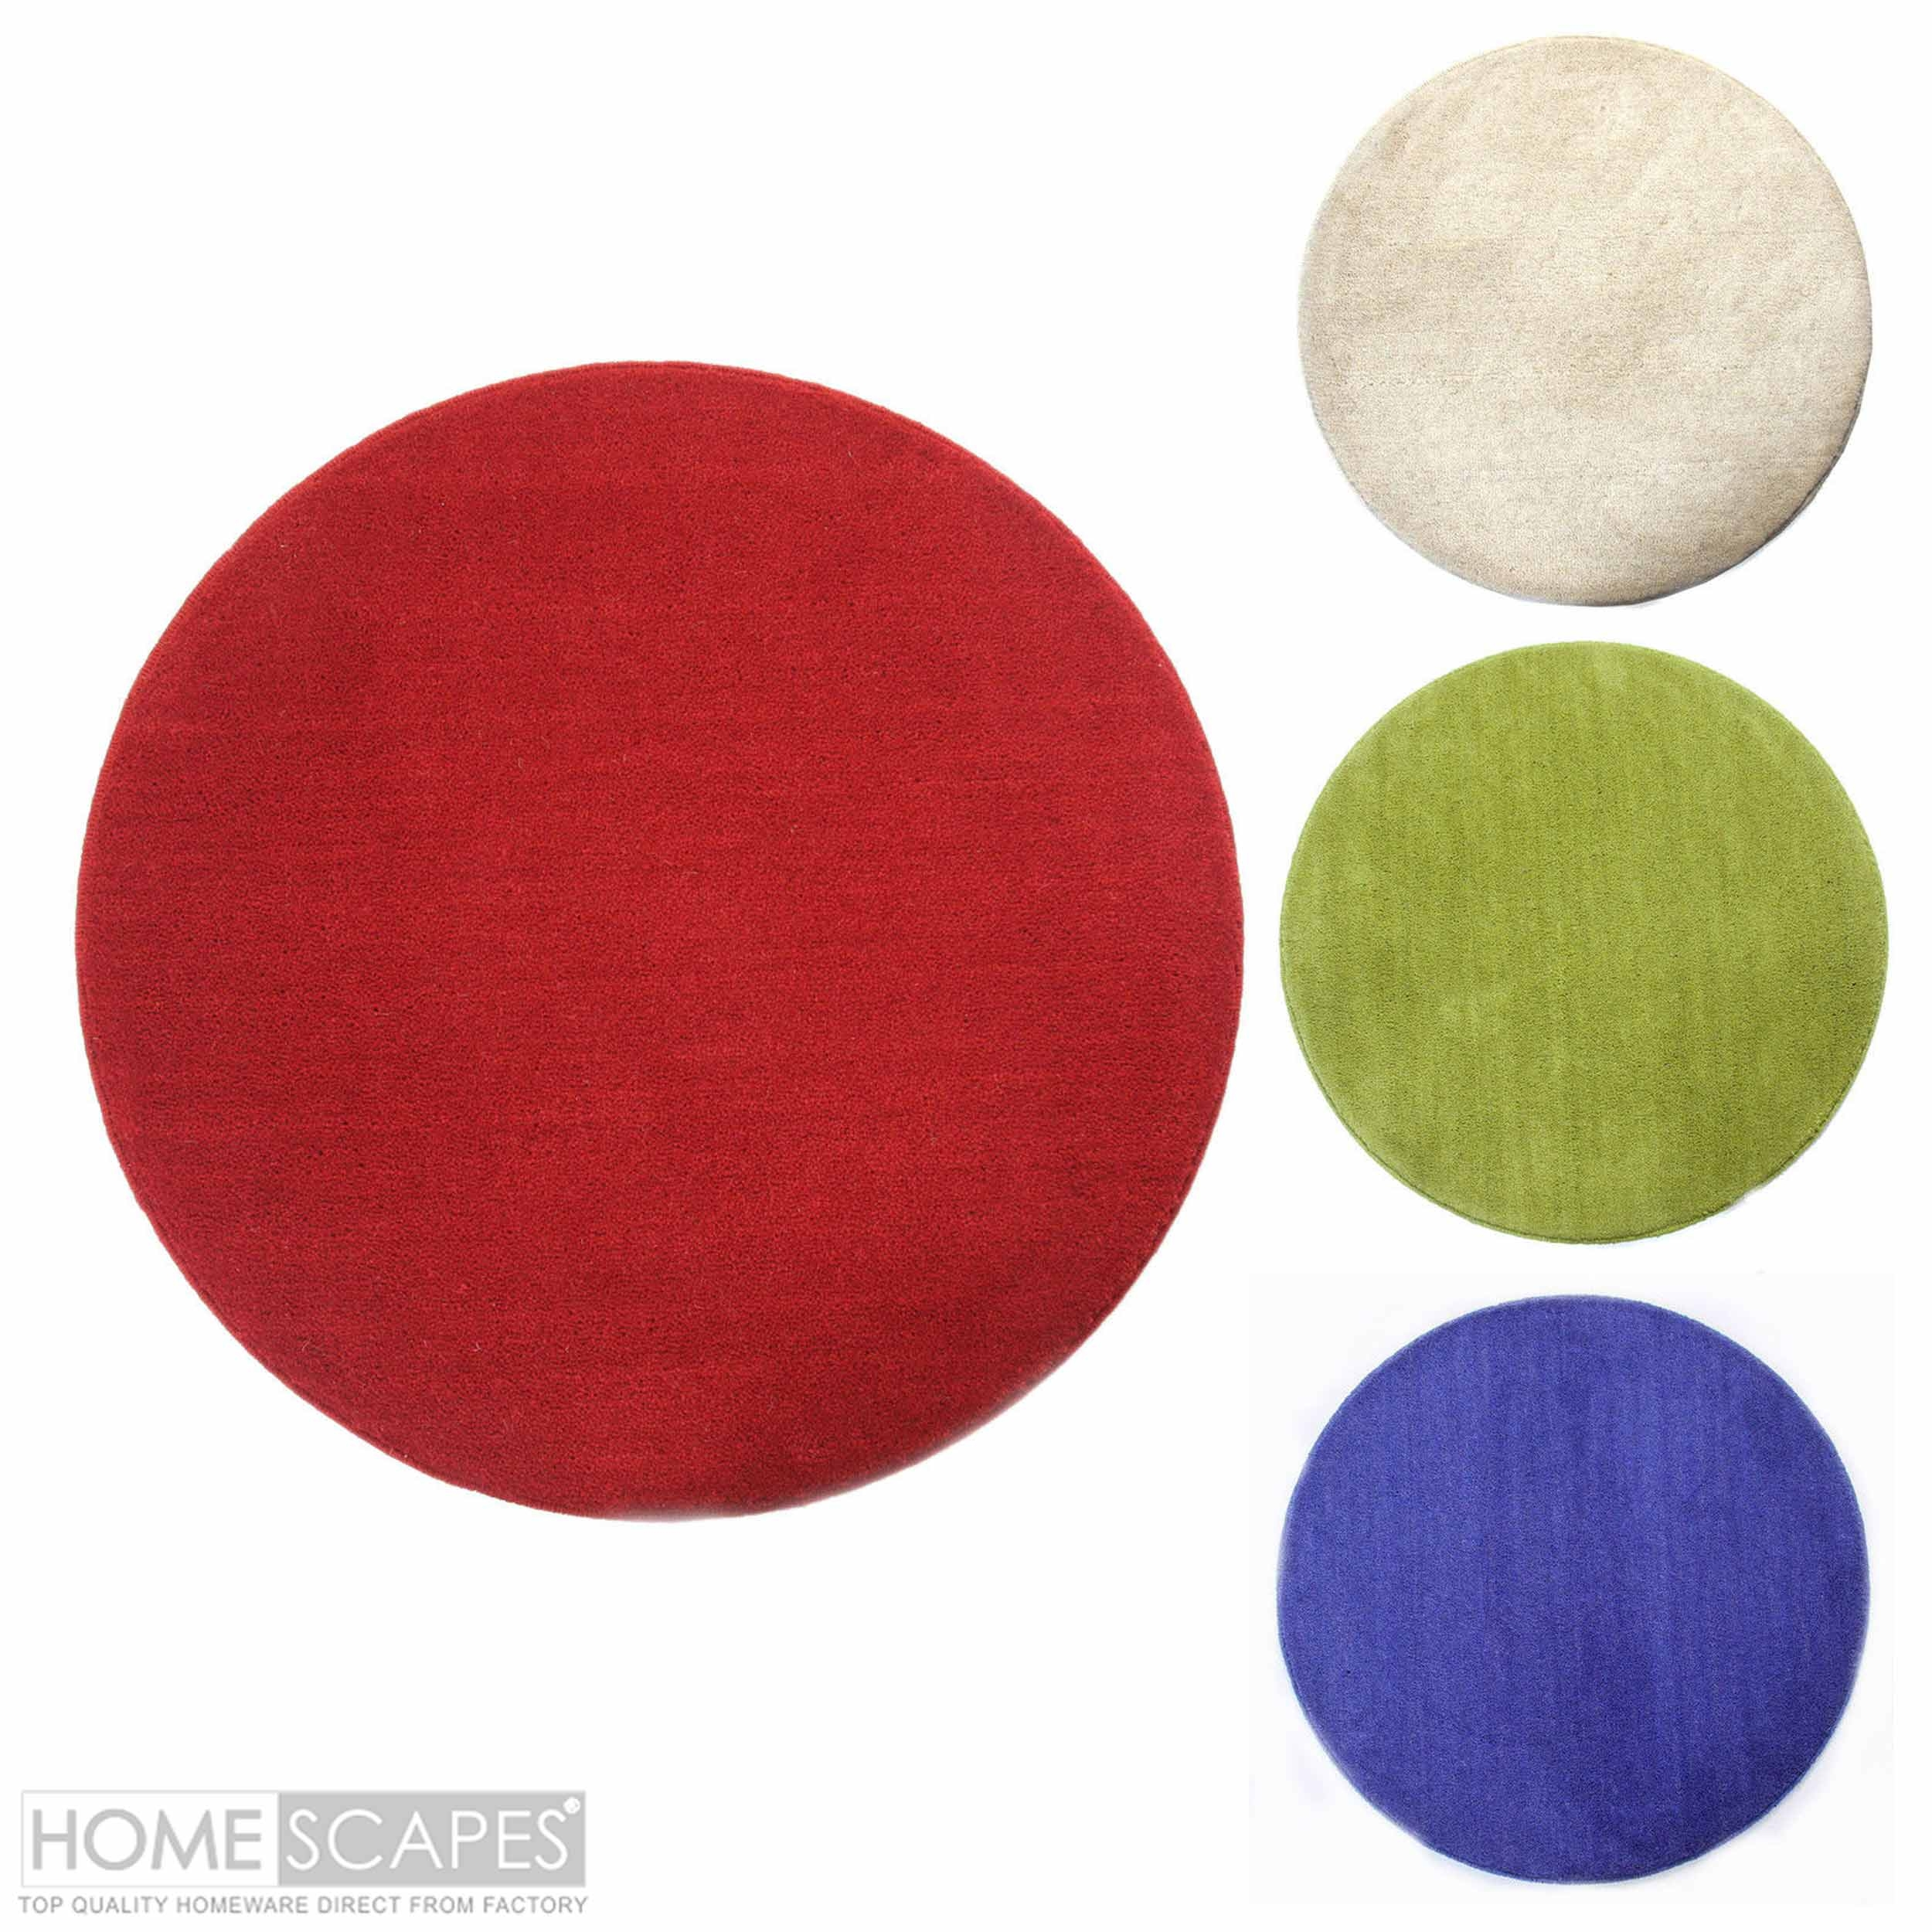 Small Round Rugs Uk Roselawnlutheran Regarding Rounds Rugs (Image 14 of 15)